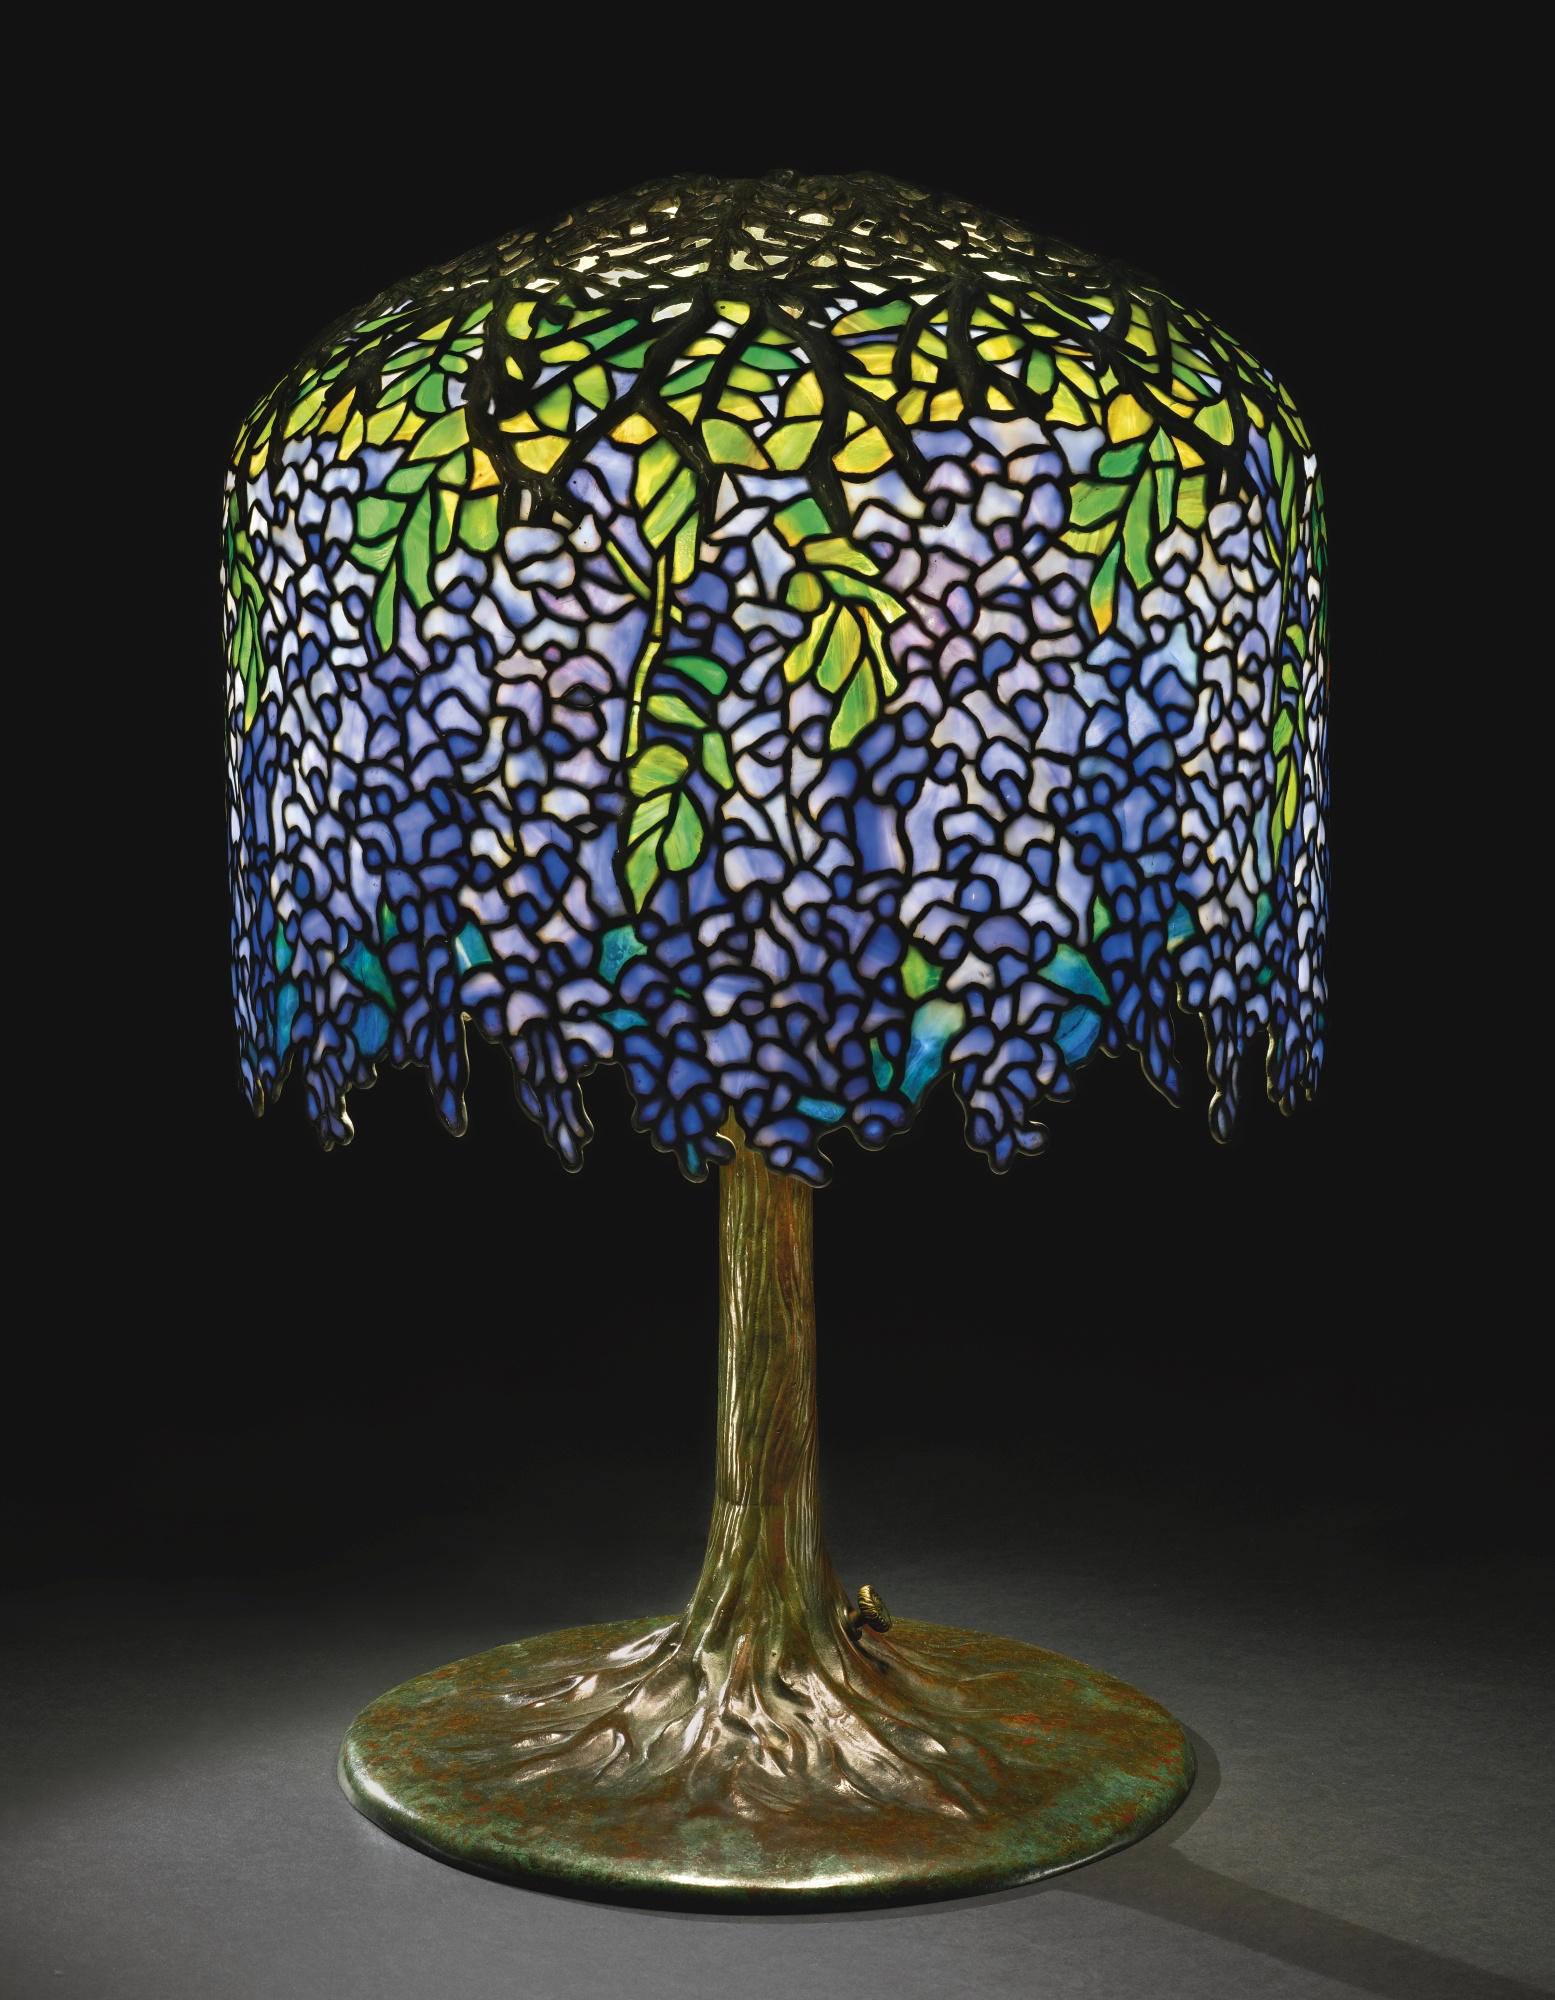 Tiffany Lampen Tischleuchte Sothebys New York Sells A Tiffany Studios Wisteria Table